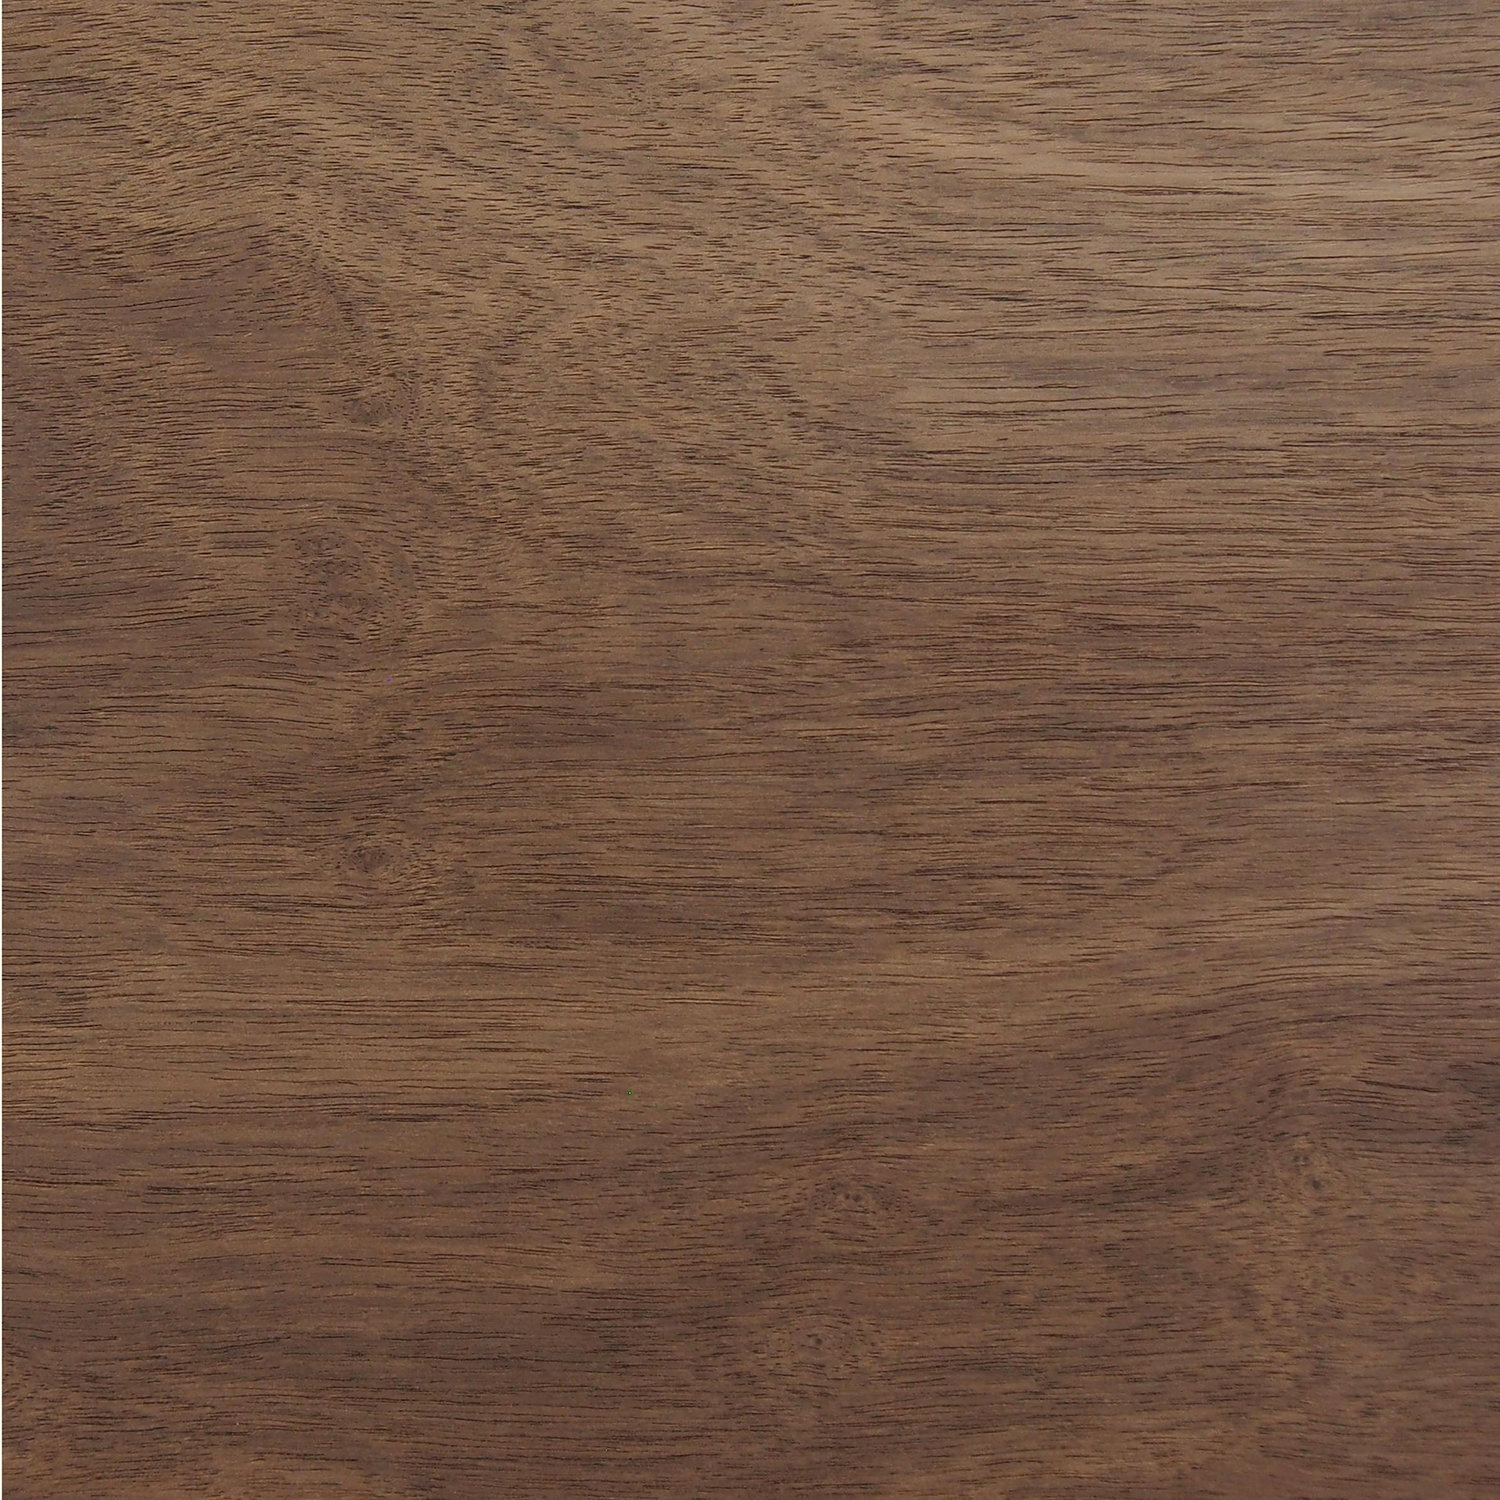 Walnut  Available in 1.5mm / 2.5mm Maximum size: 600mm x 1200mm